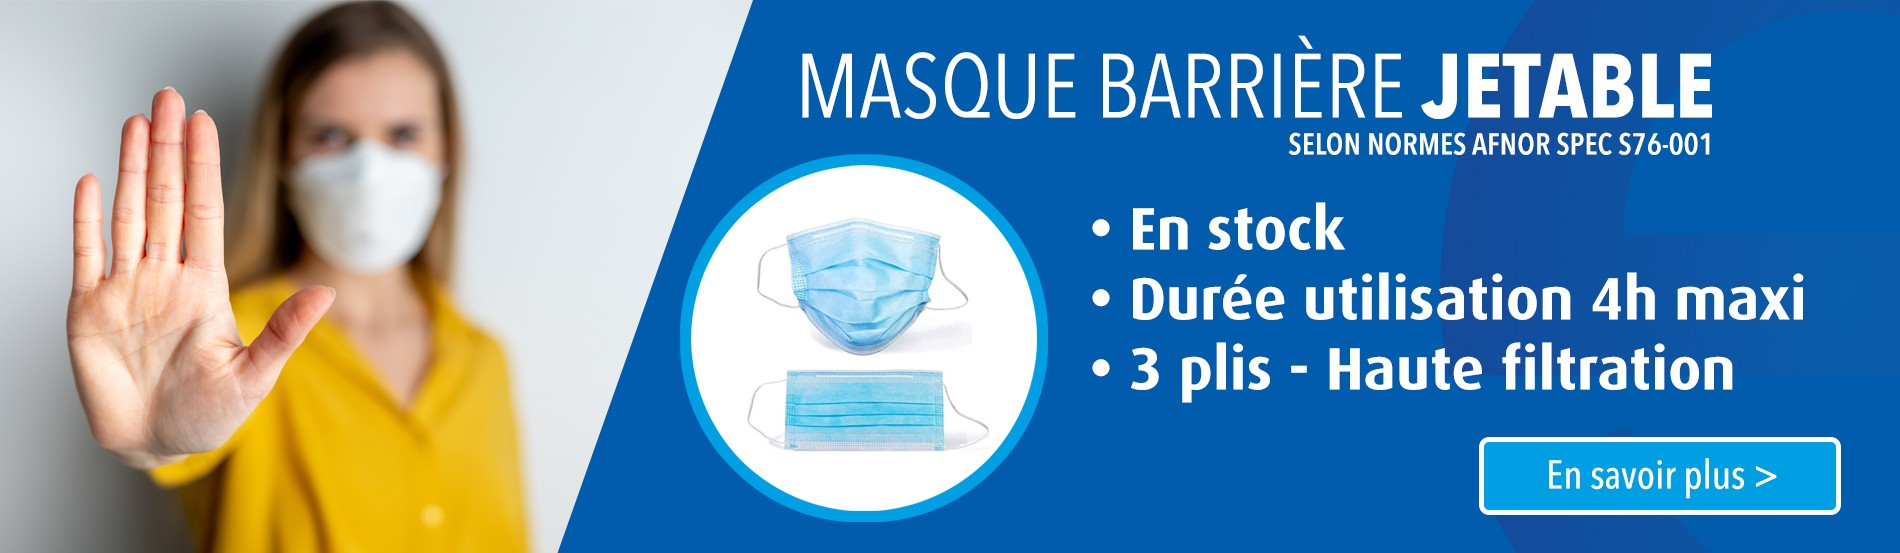 Masque barriere jetable